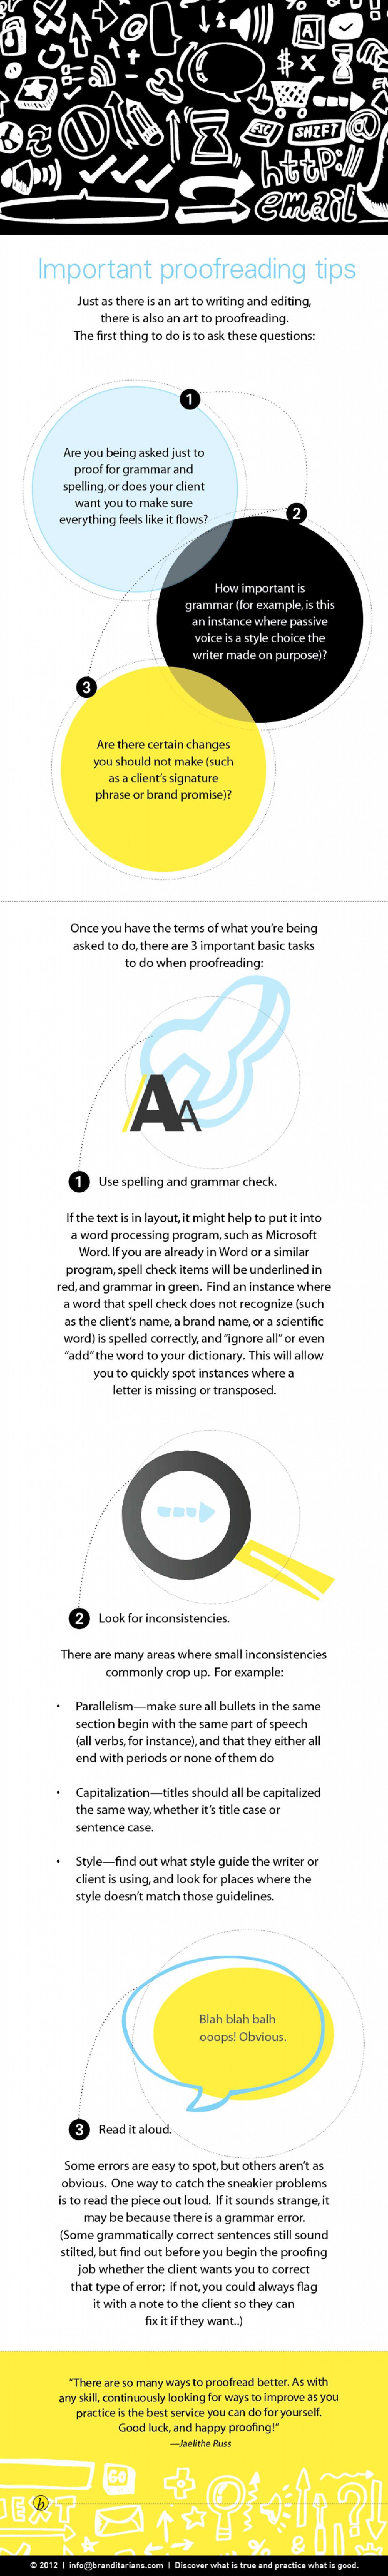 Important Proofreading Tips Infographic